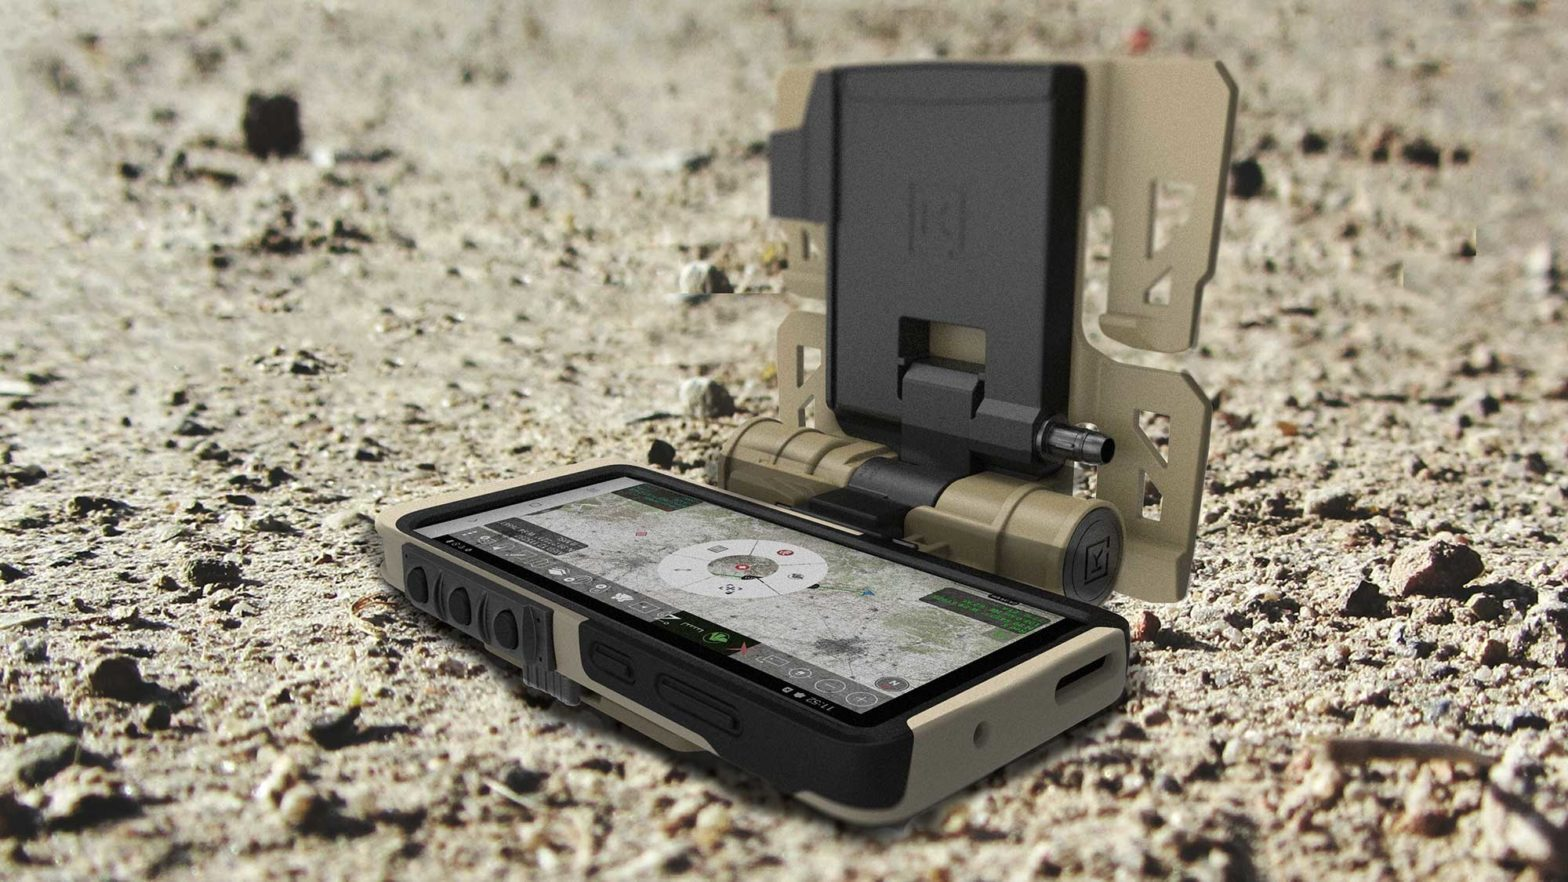 Samsung Galaxy S20 Tactical Edition Smartphone